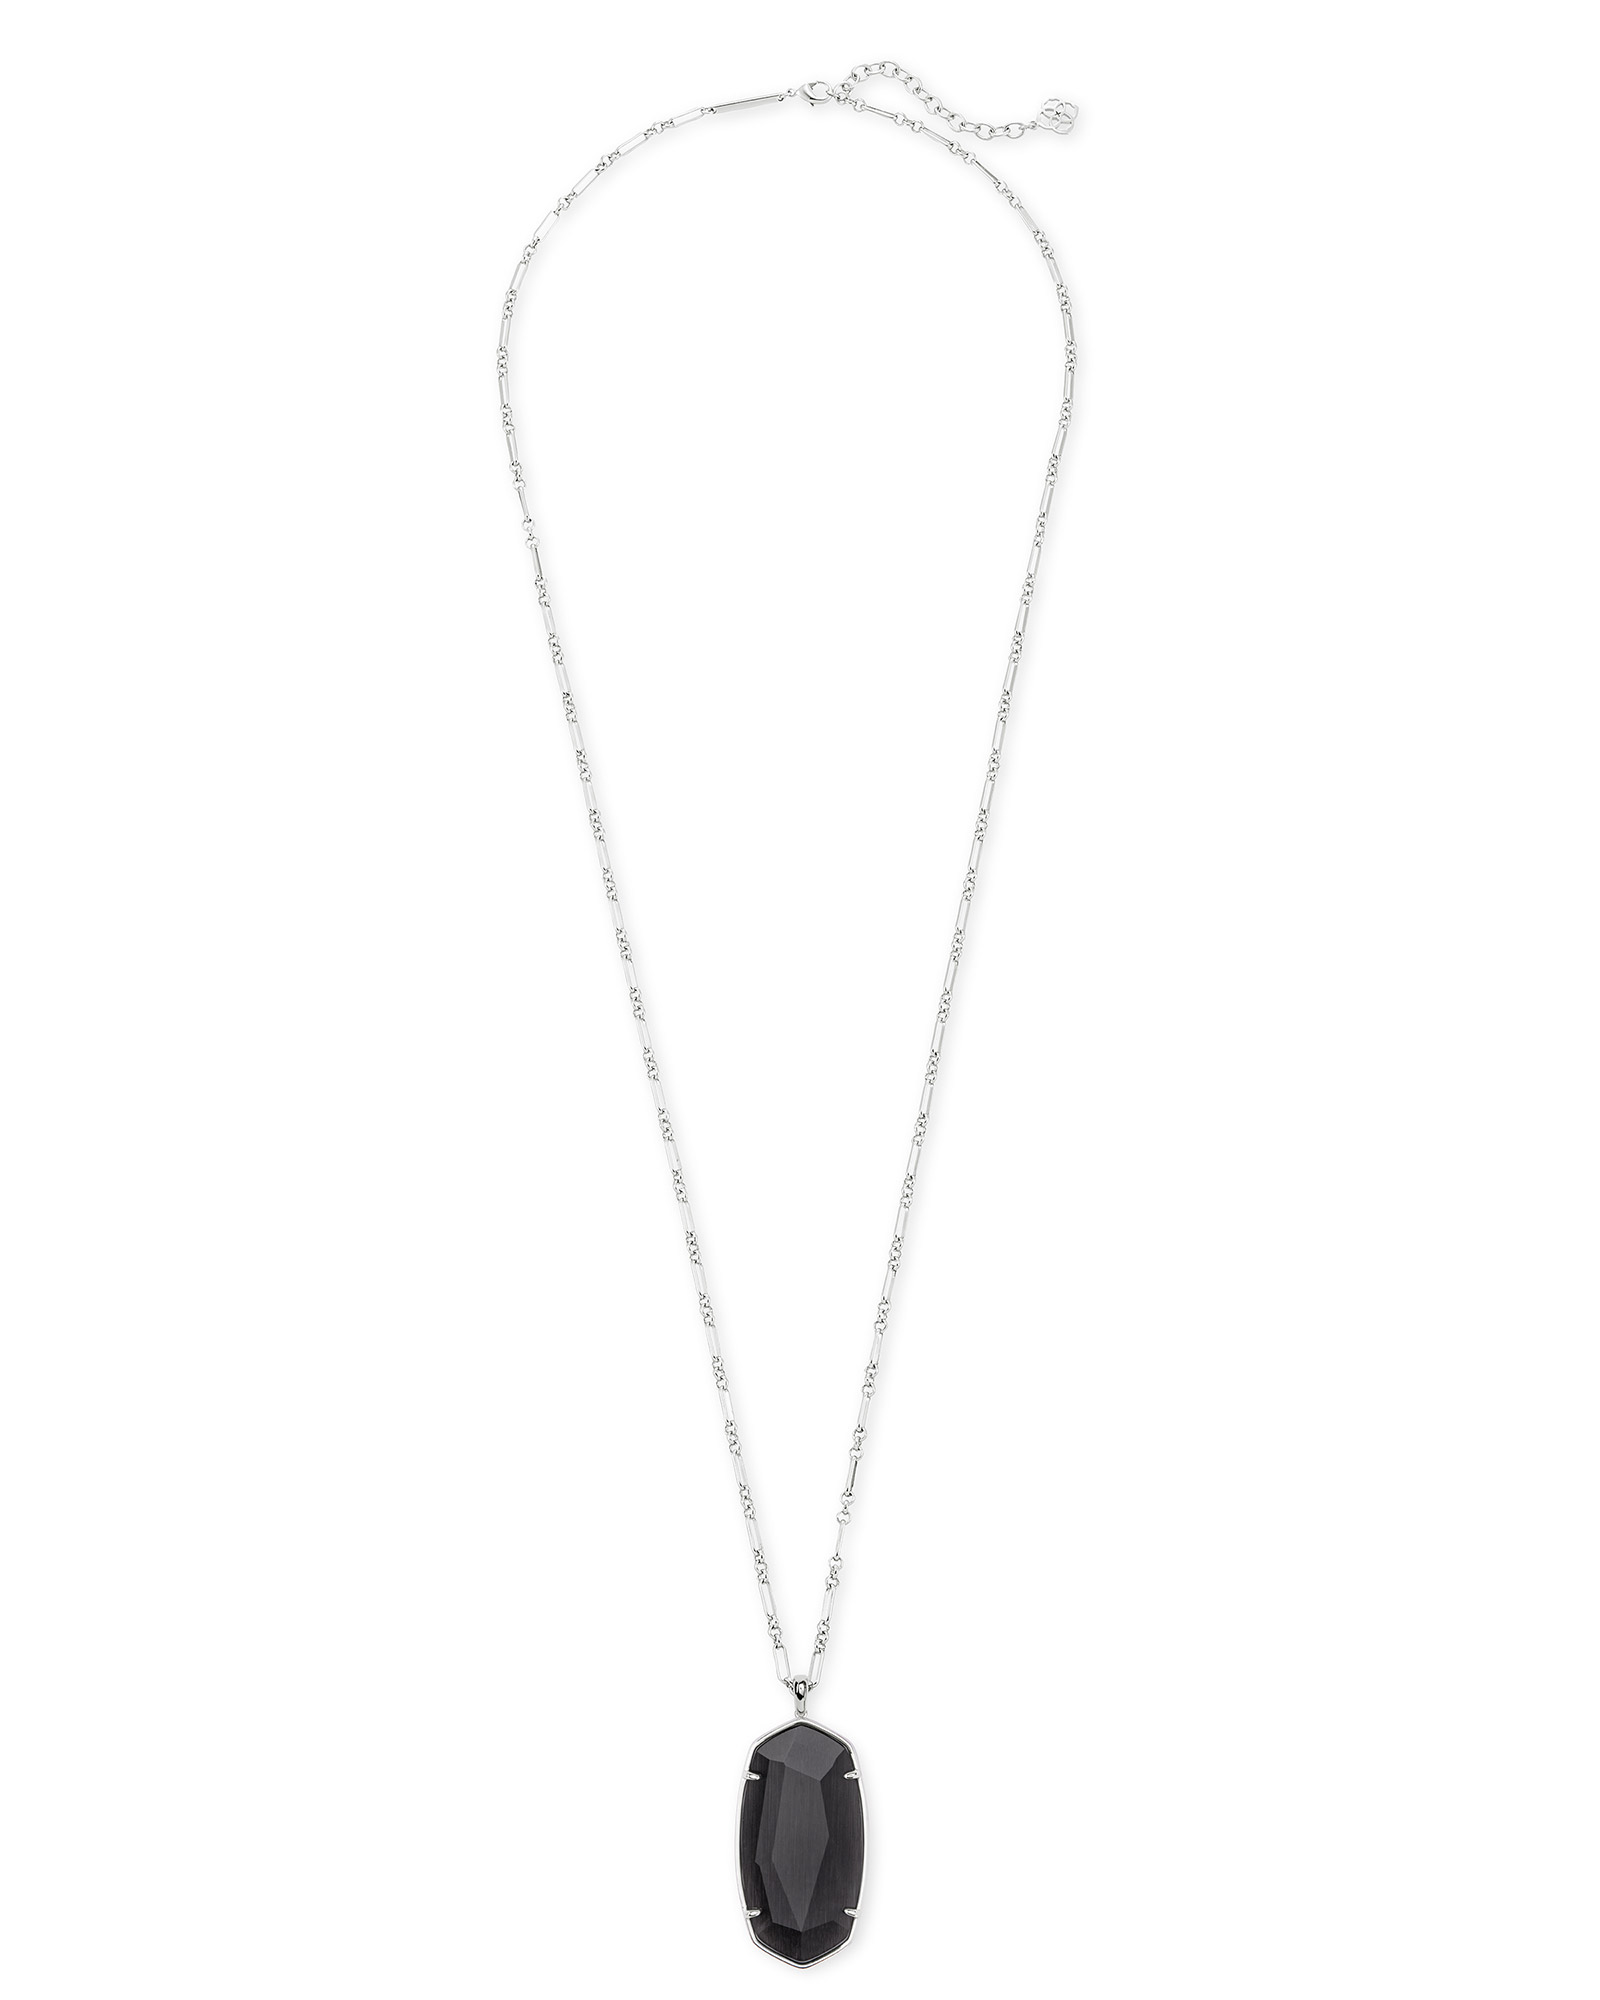 Faceted Reid Silver Long Pendant Necklace in Black Cat's Eye